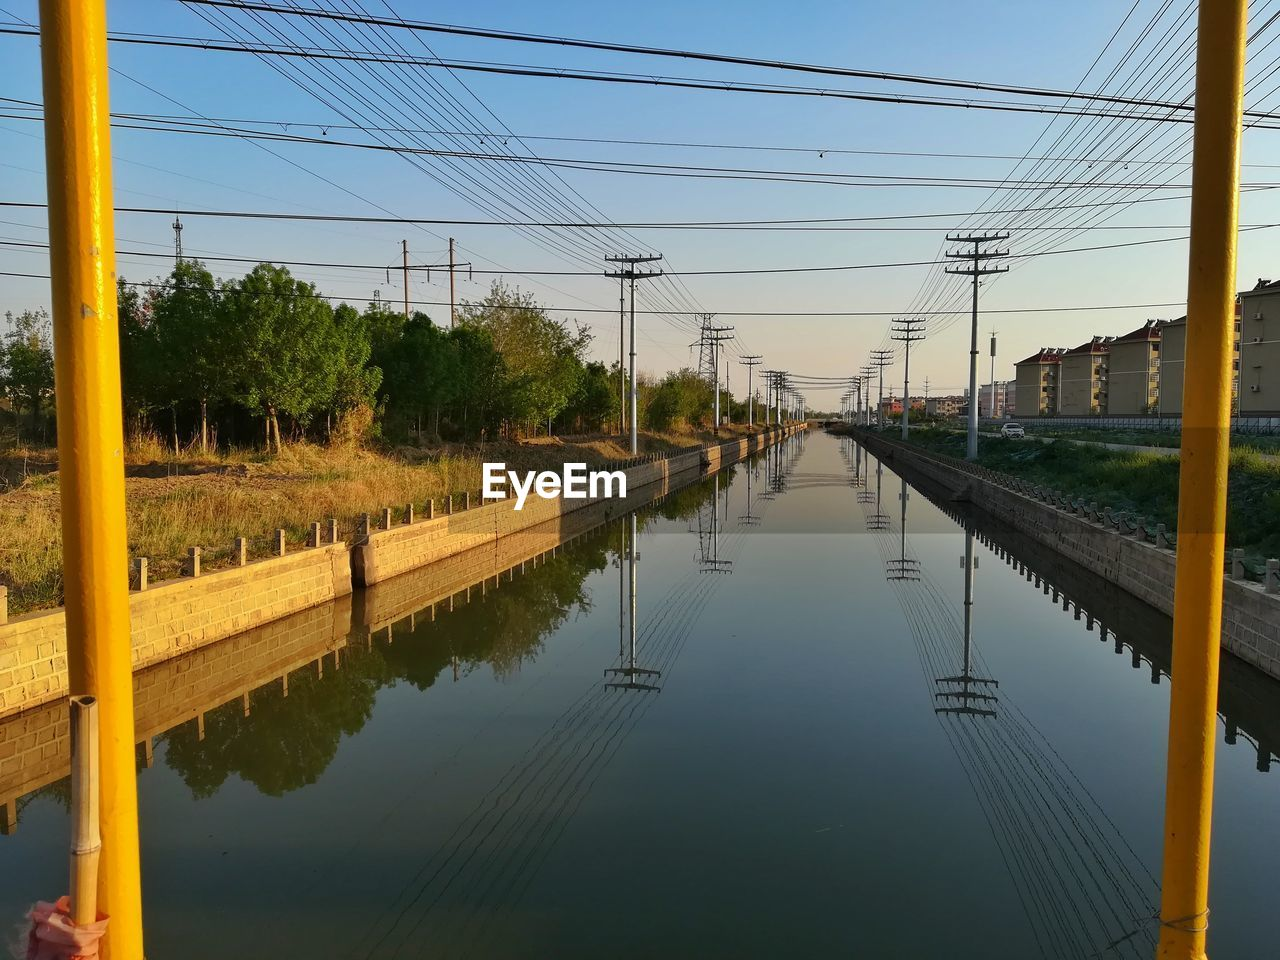 sky, water, reflection, cable, electricity, technology, electricity pylon, connection, nature, power line, no people, plant, fuel and power generation, tree, power supply, diminishing perspective, transportation, architecture, built structure, outdoors, canal, telephone line